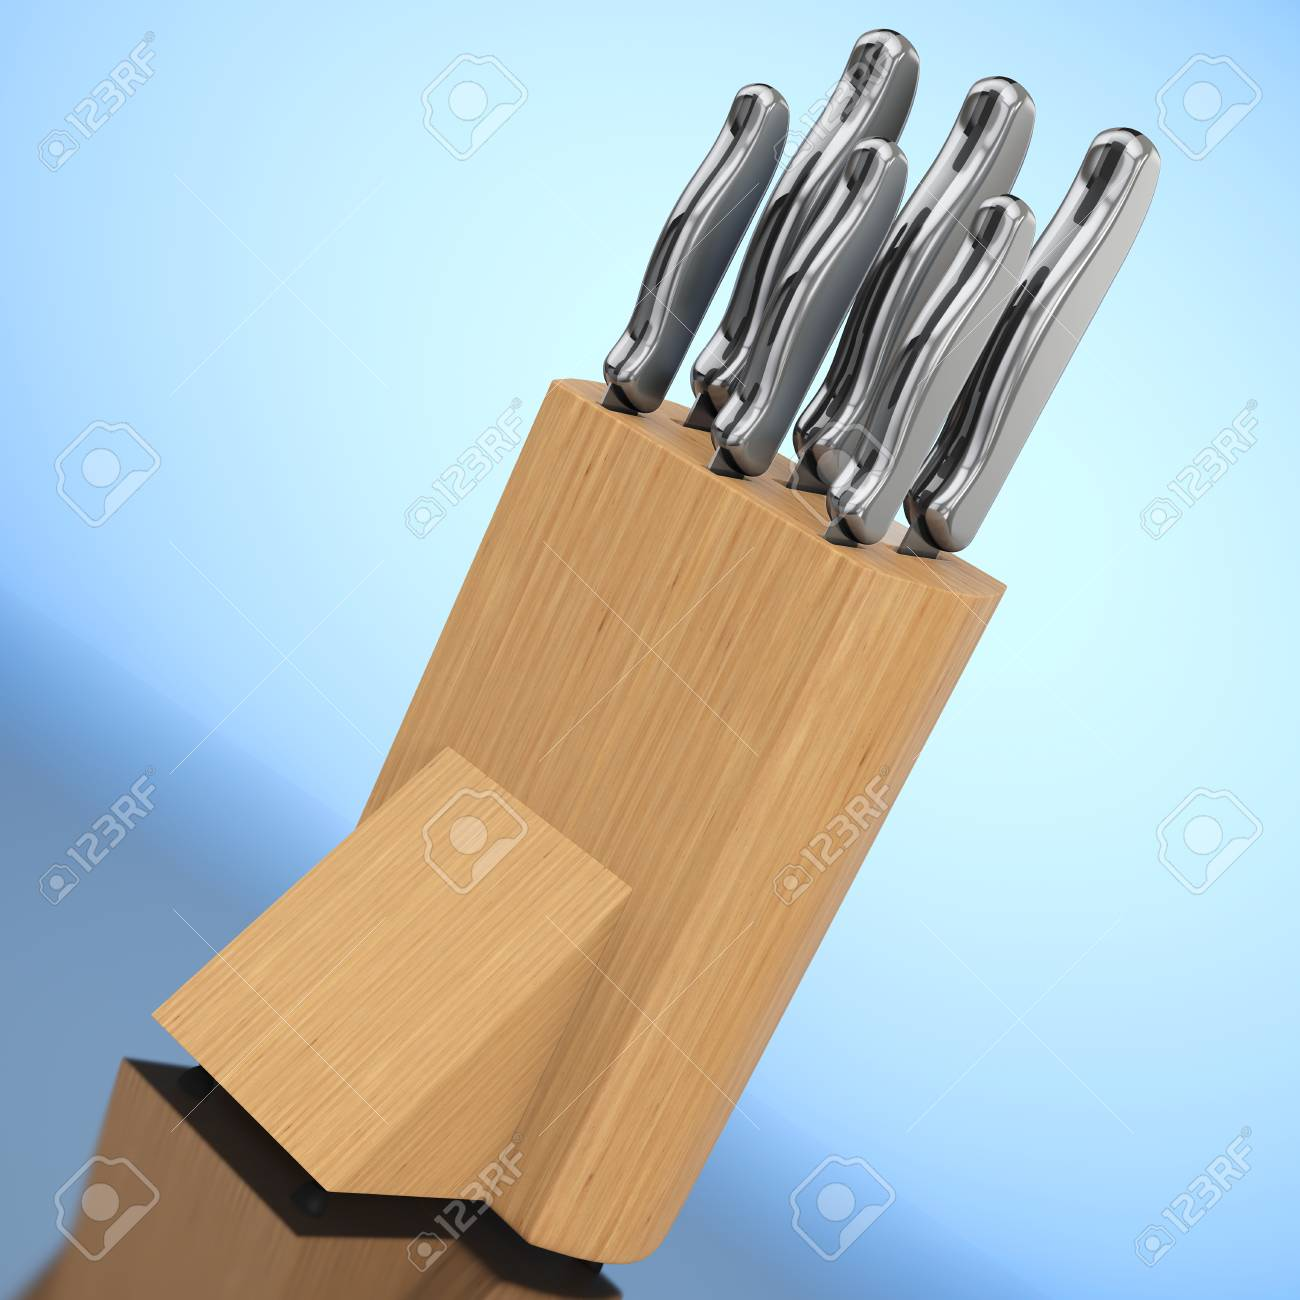 professional kitchen knives custom set in wooden box on a blue background 3d rendering stock photo